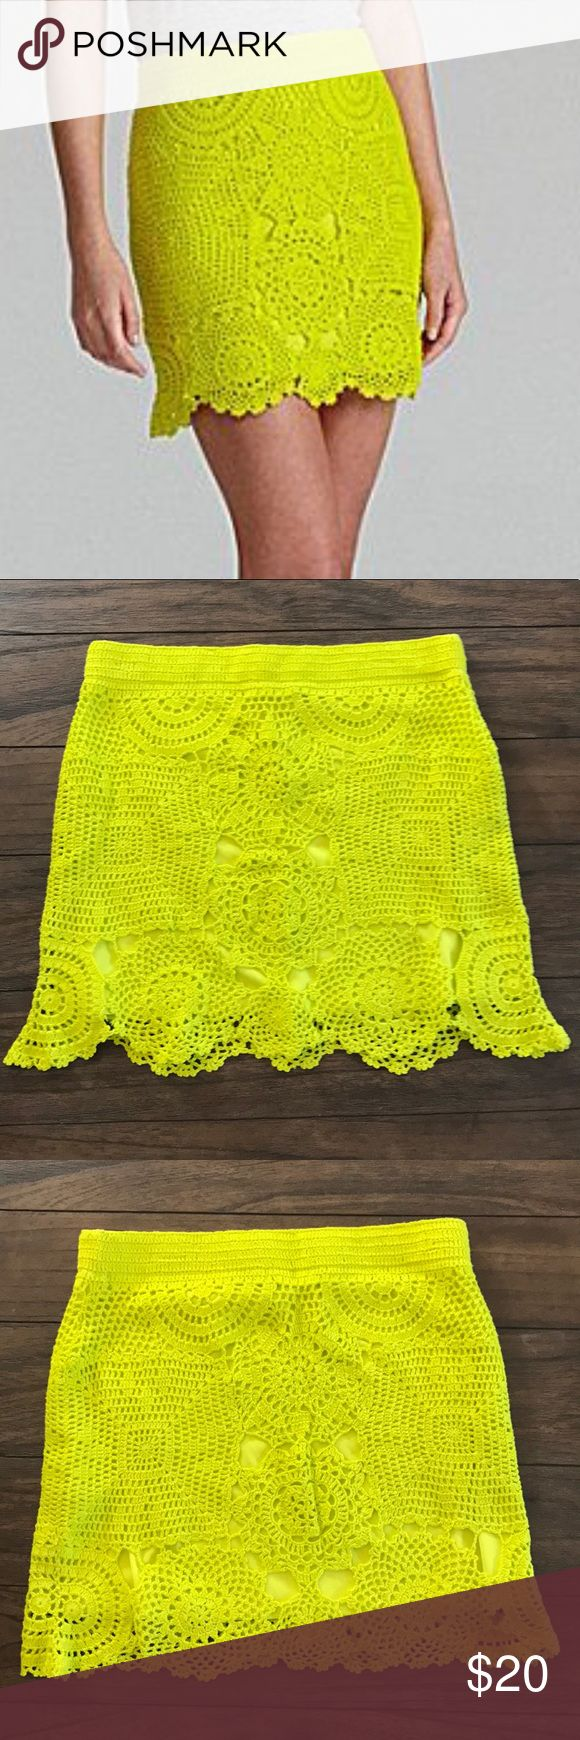 Gianni Bini Shay Crochet Knot Skirt Neon Yellow Vibrant neon yellow crochet knit skirt by Gianni Bini. Elastic waist. Perfect to wear casually on a warm day or wear to a festival. Good used condition with no flaws. 17 inches length, measured flat waist is 16 inches but does stretch 💕 Gianni Bini Skirts